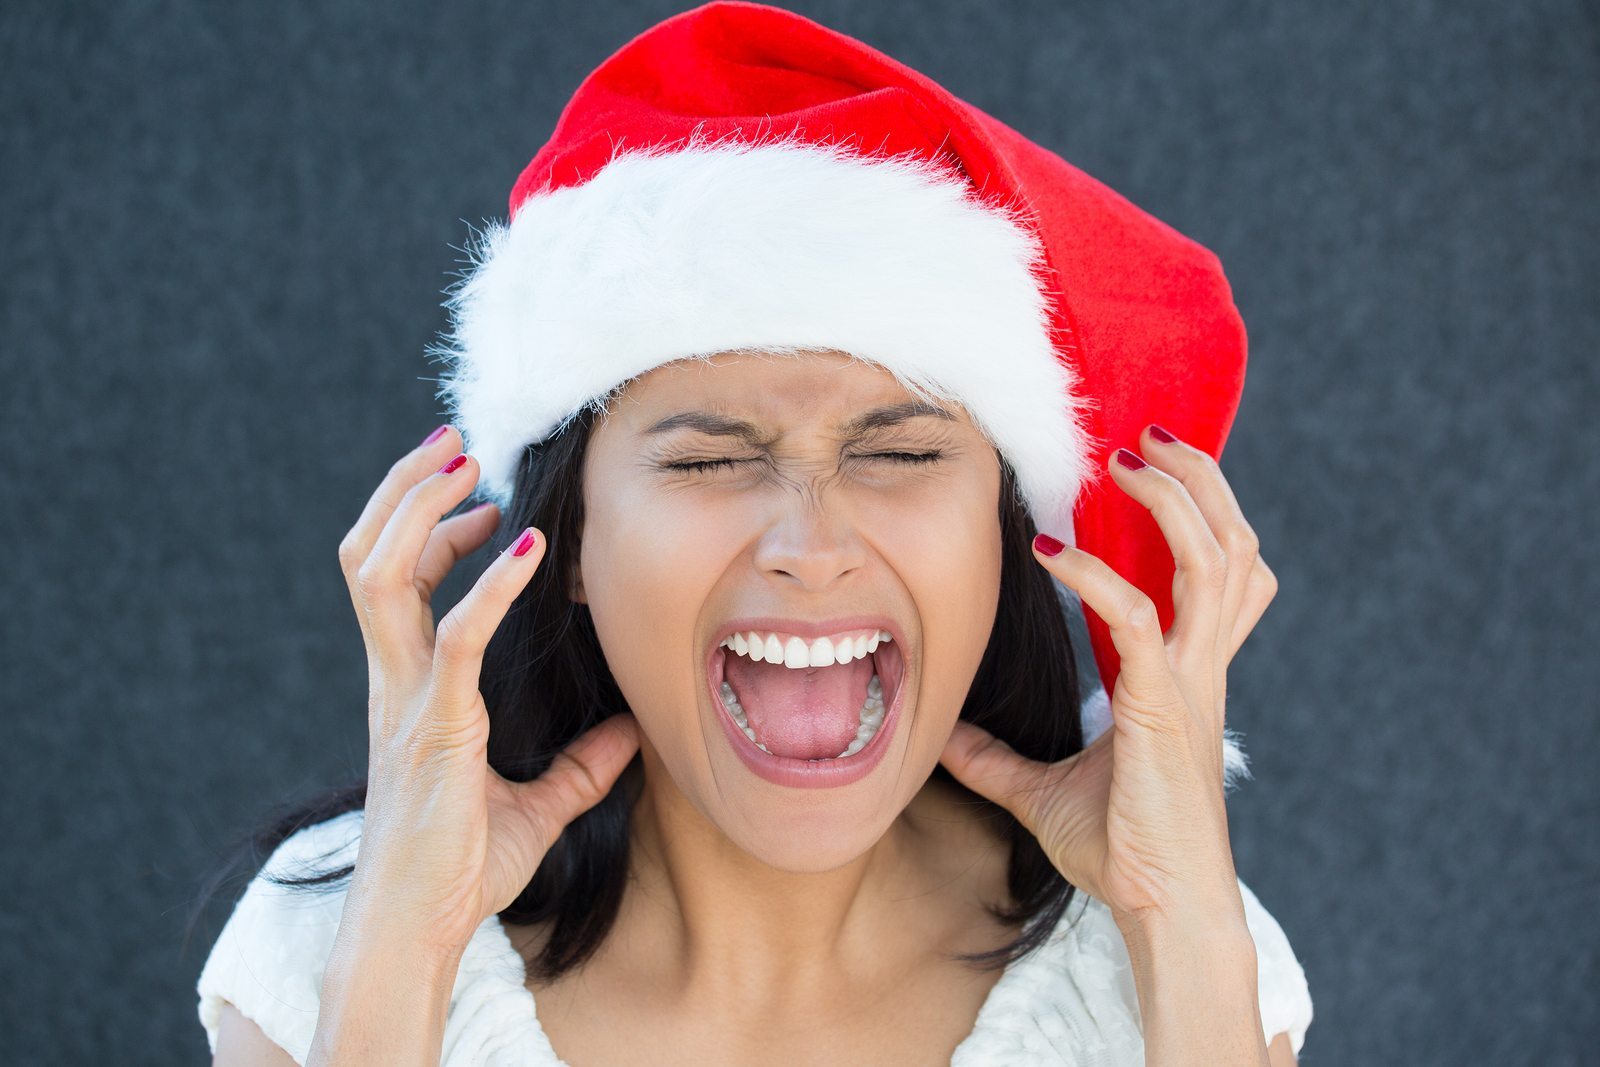 Closeup portrait of a cute Christmas woman with a red Santa Claus hat white dress screaming out loud frustrated eyes shut in rage. Negative human emotion on an isolated grey background.